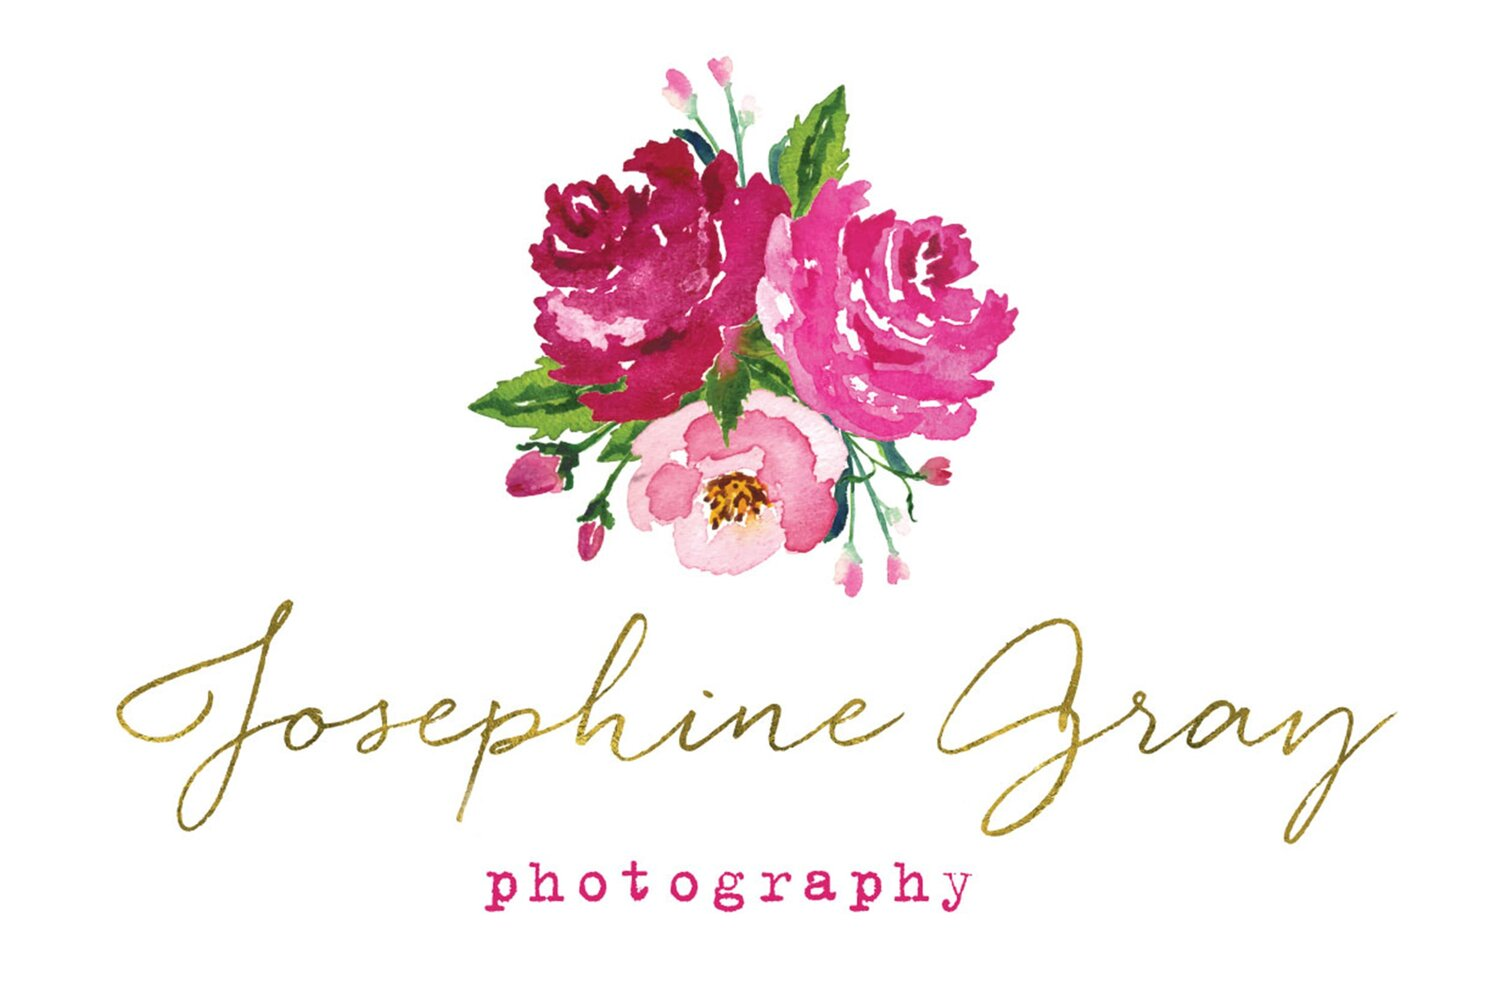 josephinegray.co.uk